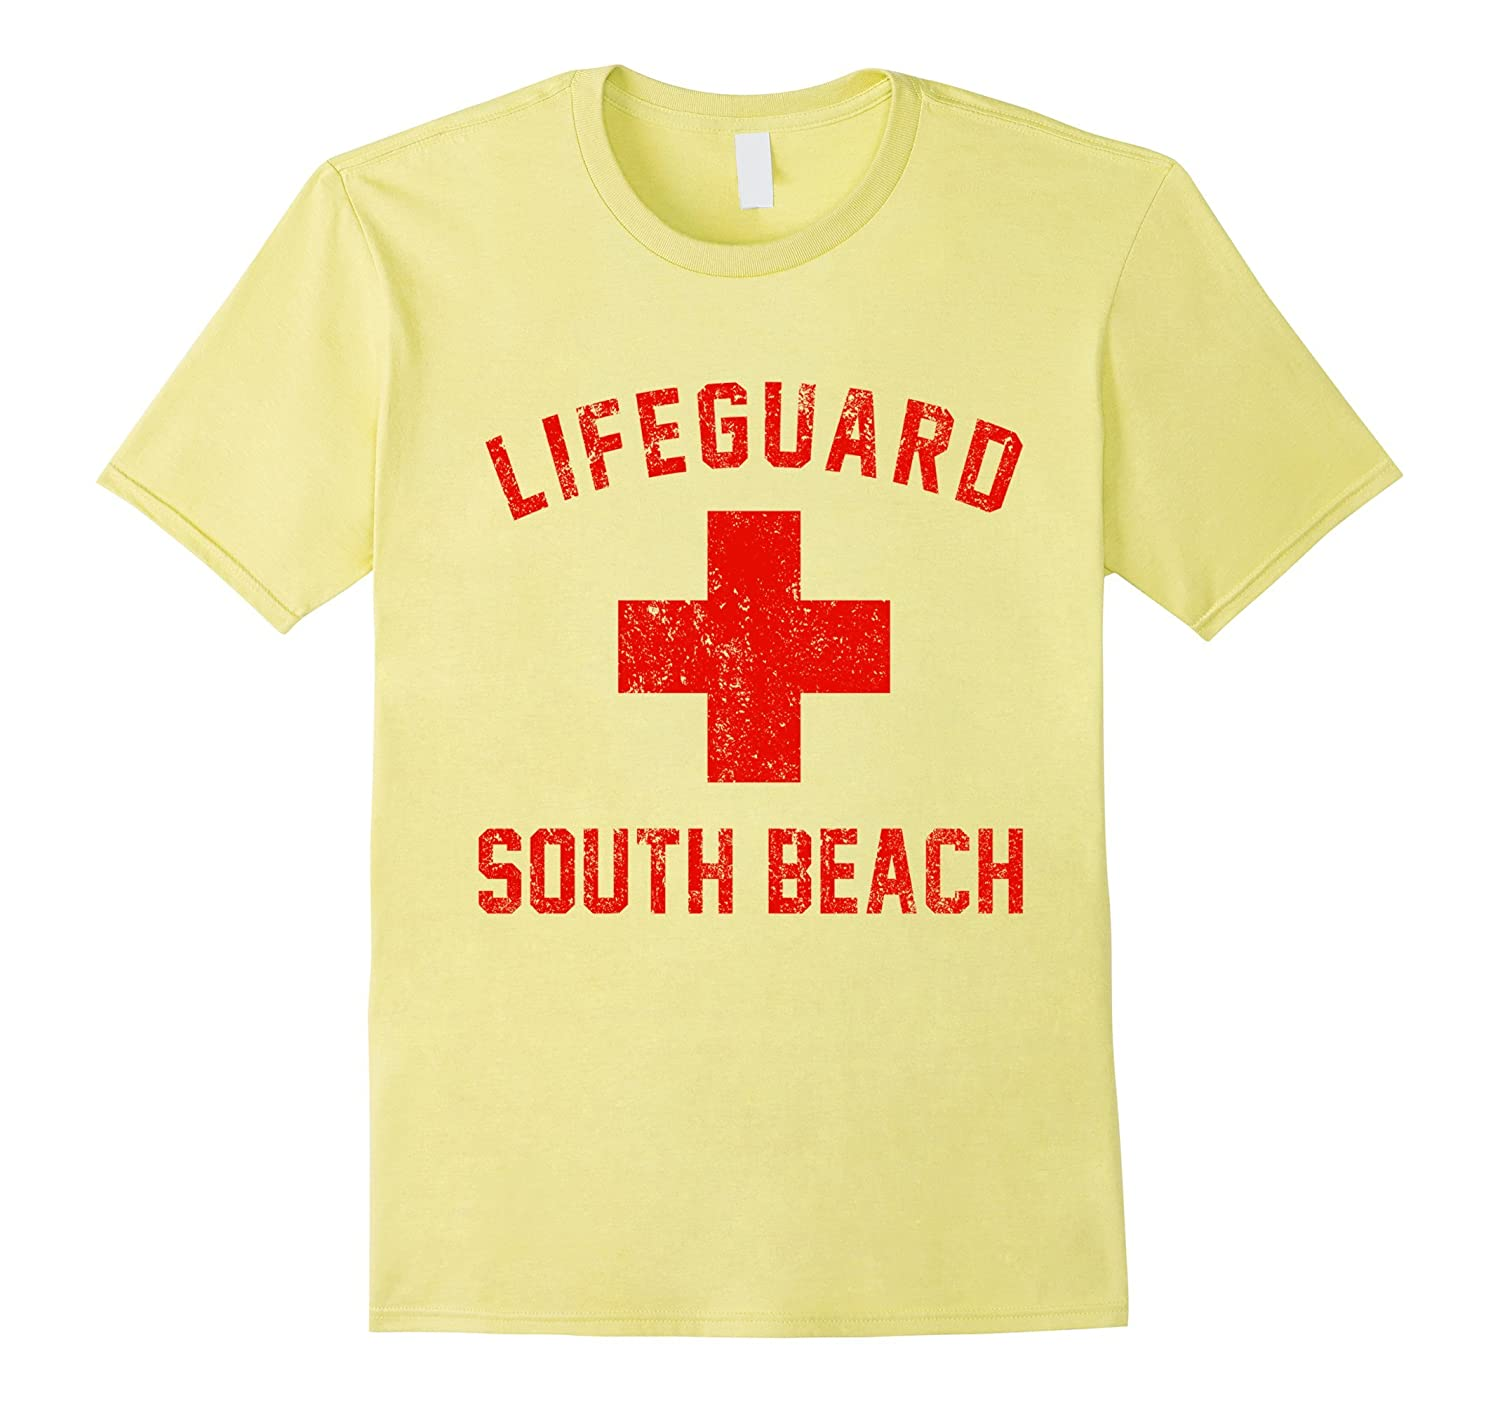 Lifeguard South Beach Florida FL Swimming Pool Ocean T Shirt